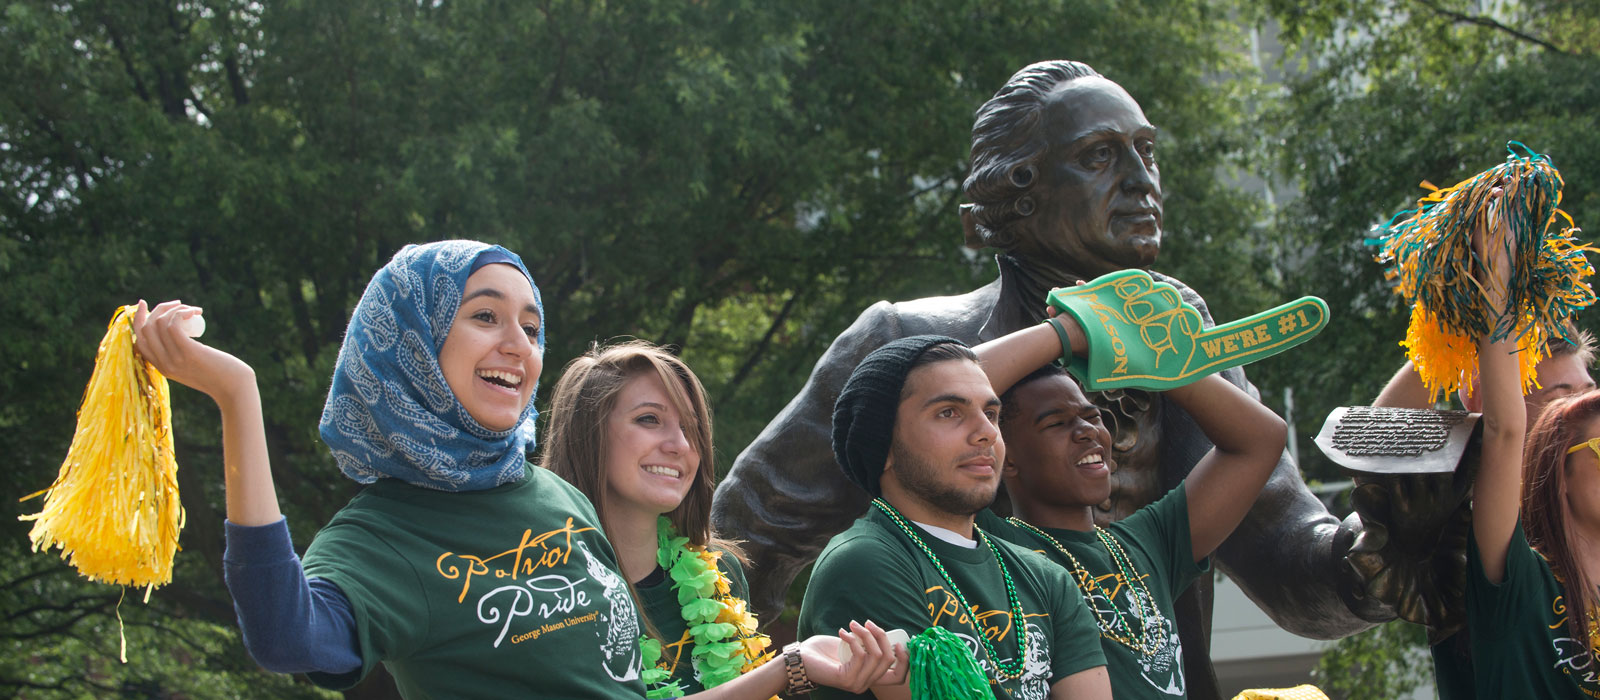 New fresman students celebrate at the George Mason statue on the Fairfax Campus